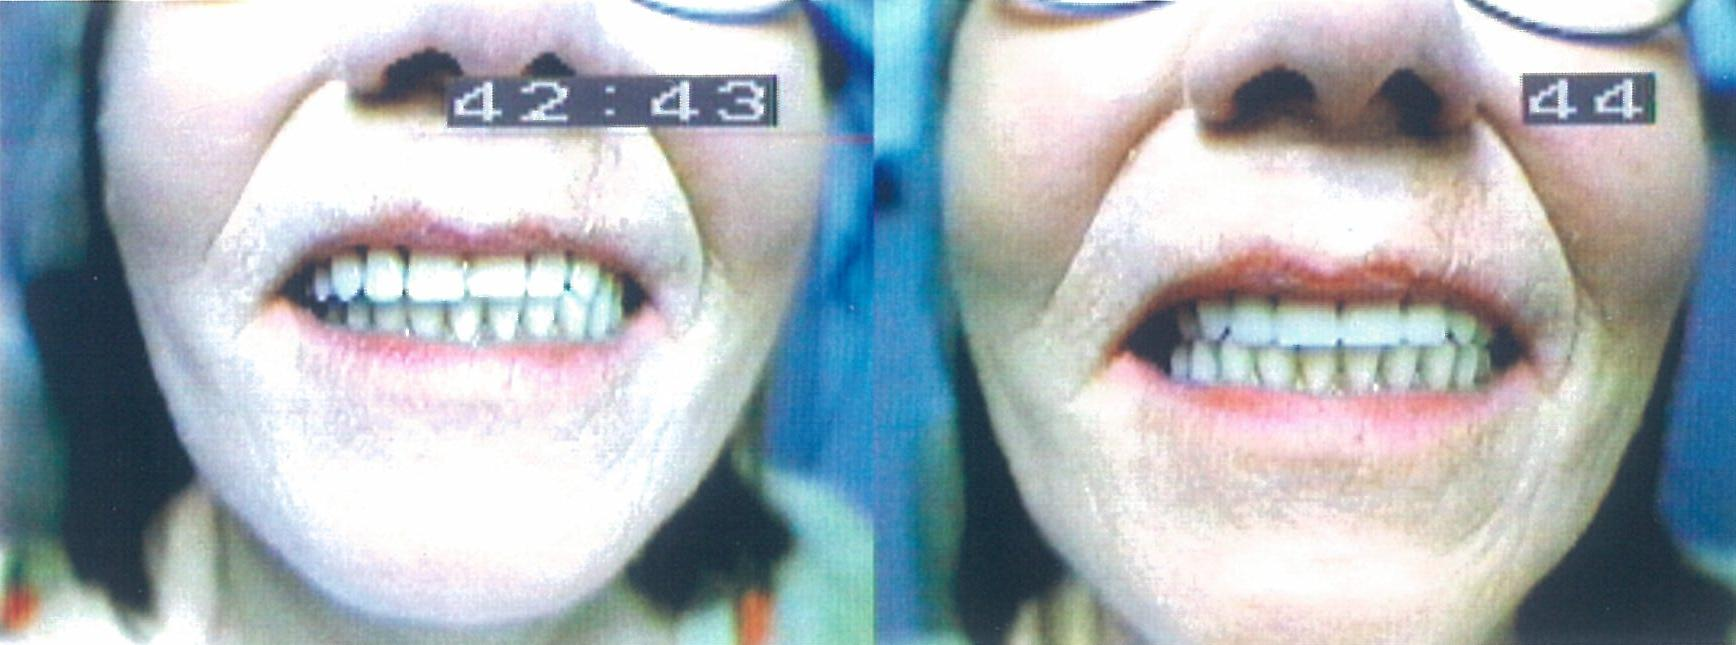 Before and After Complete Upper Implant Supported Denture Denture